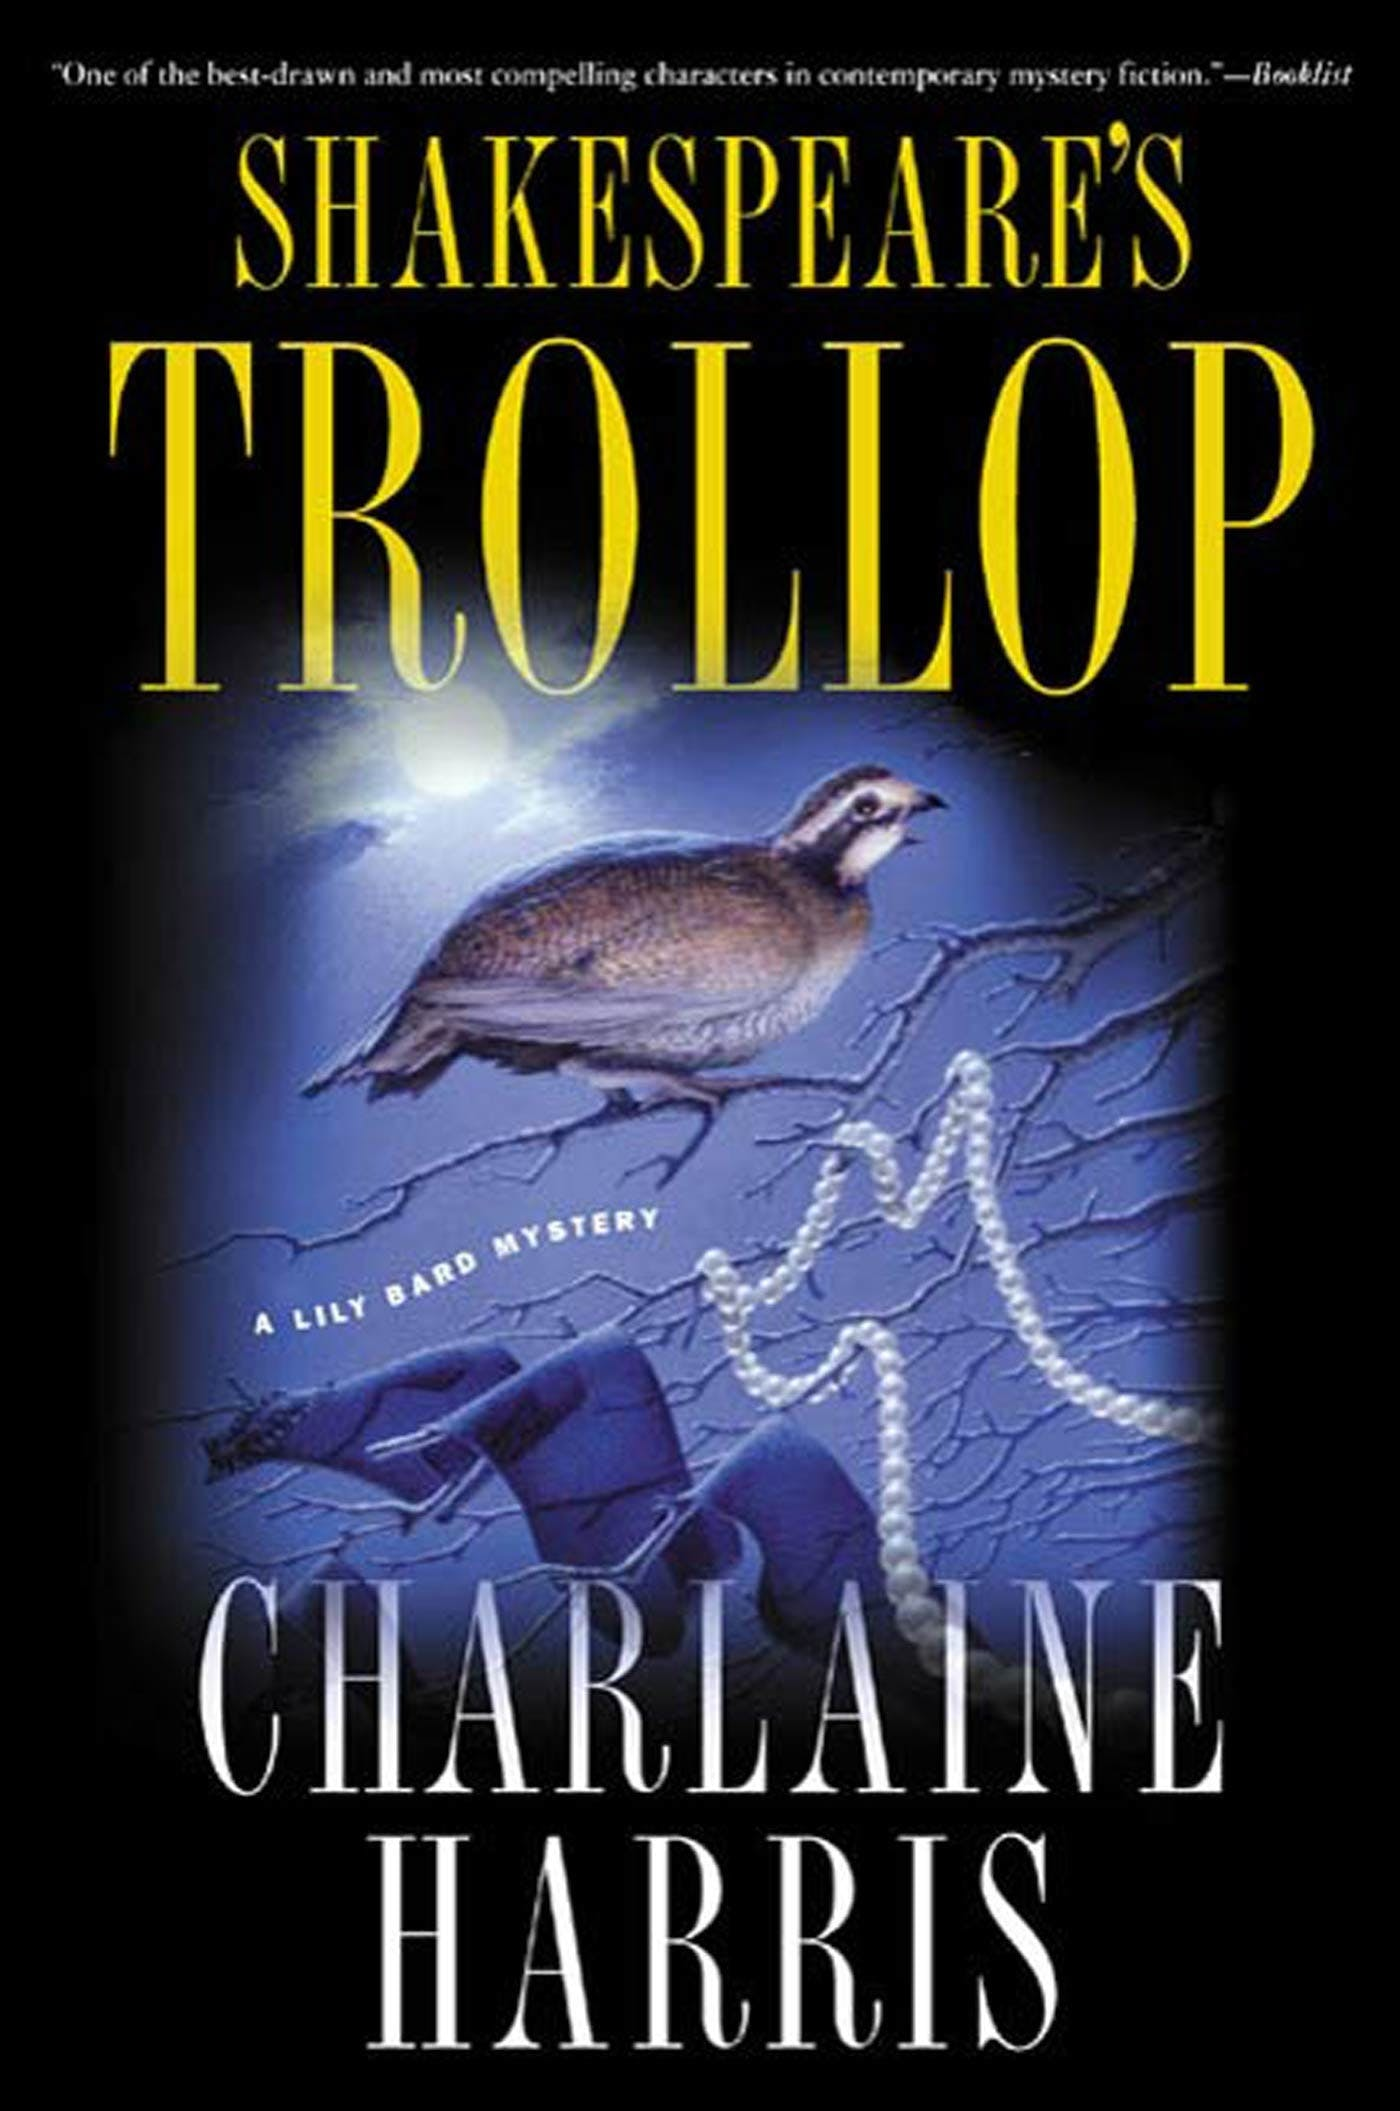 Image of Shakespeare's Trollop